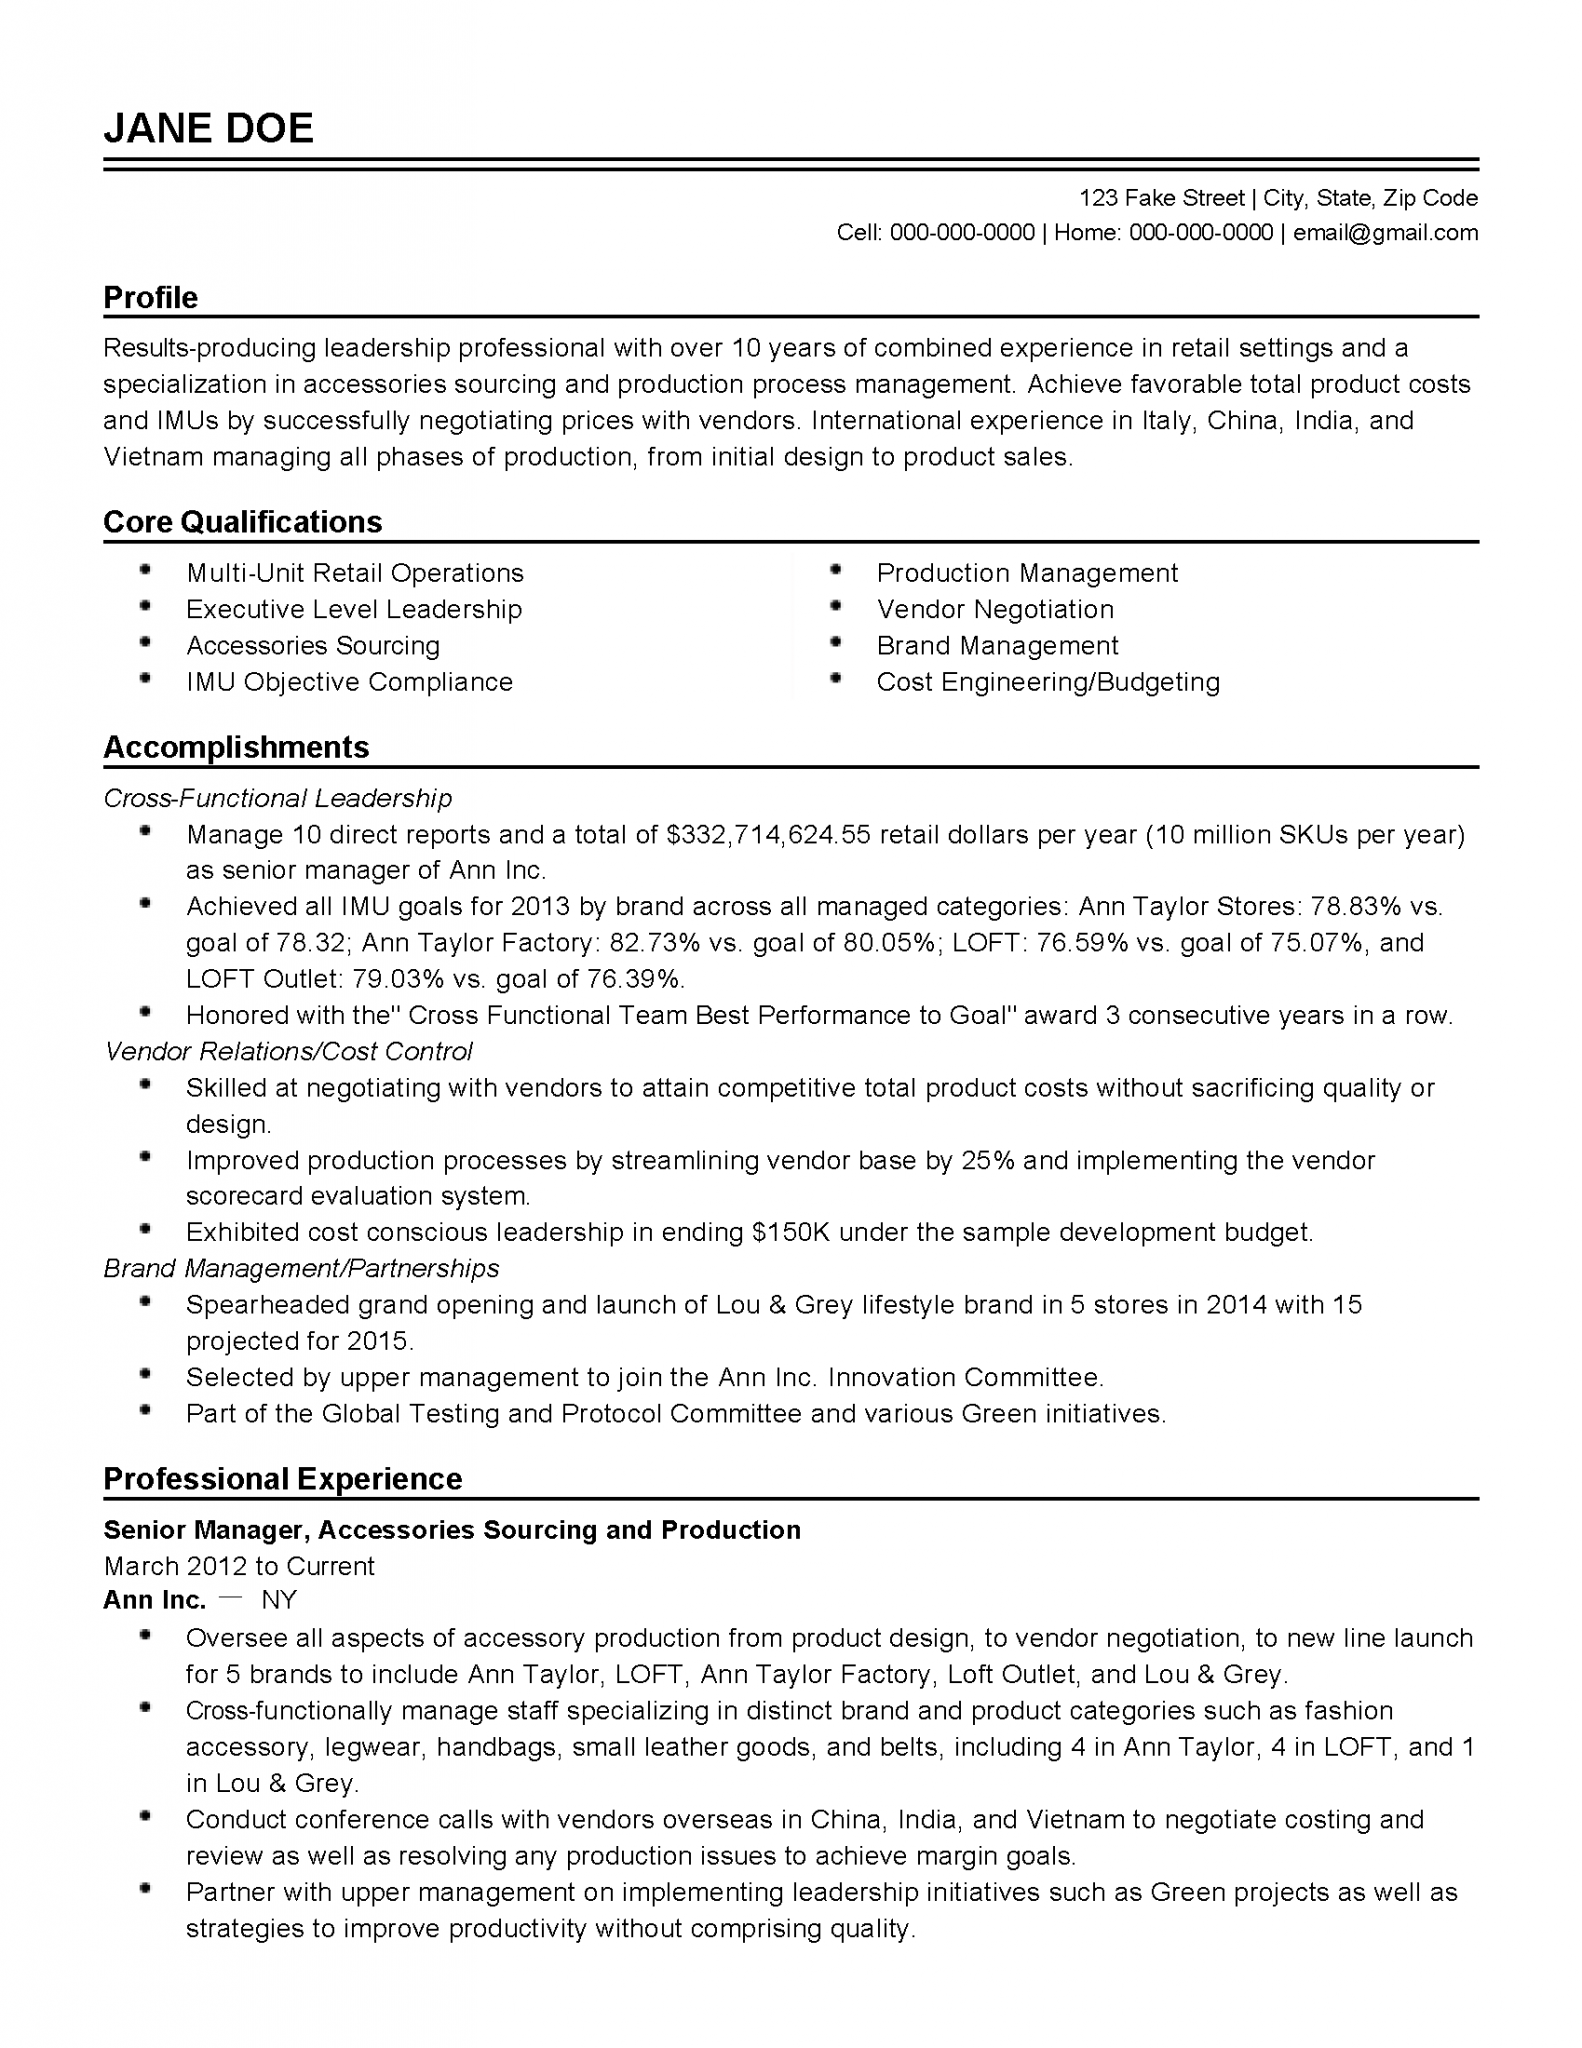 Physician Assistant Jobs Nc Email Resume Cv 2019 Resume Cv